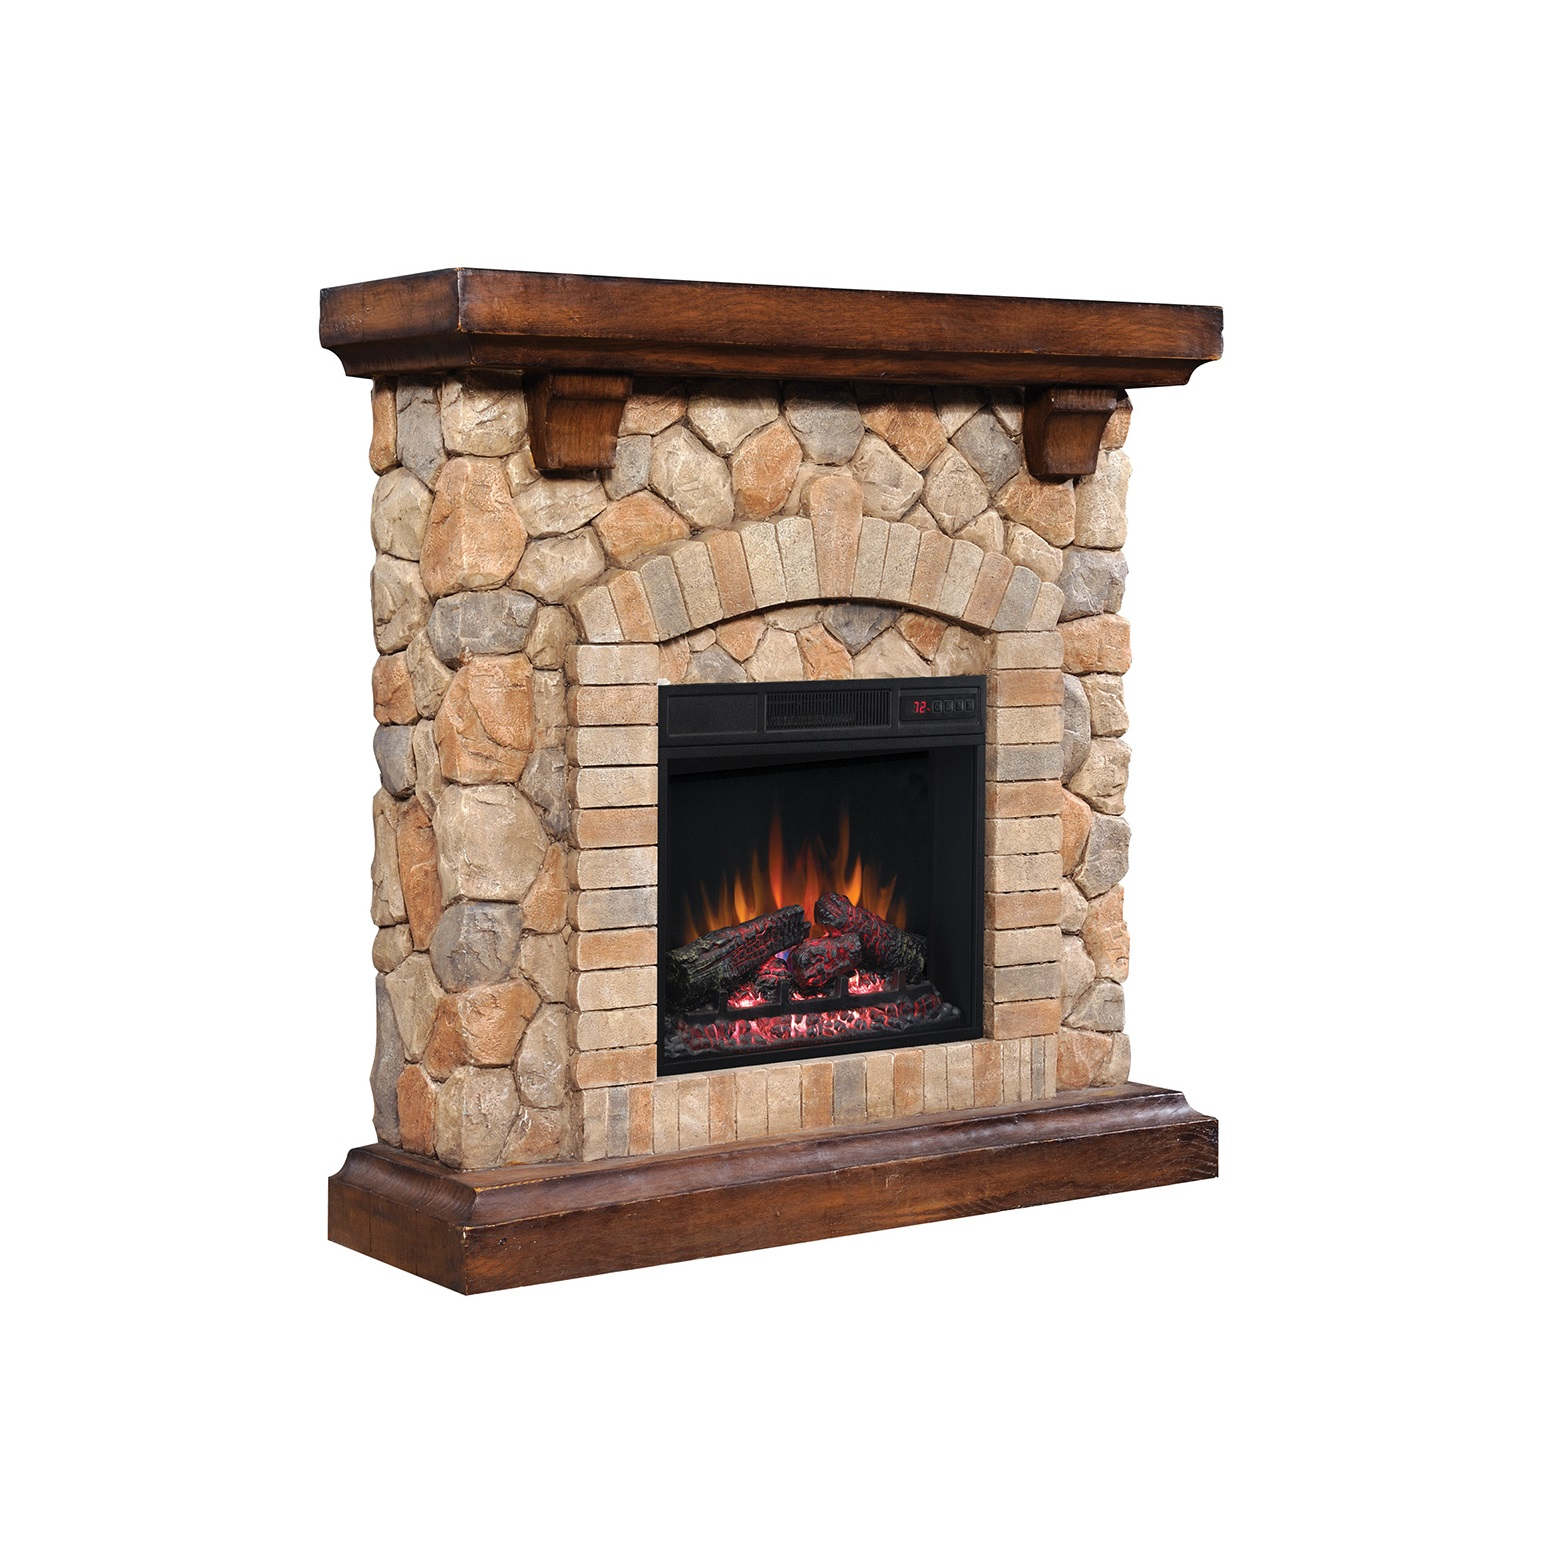 Old Electric Fireplace Heater